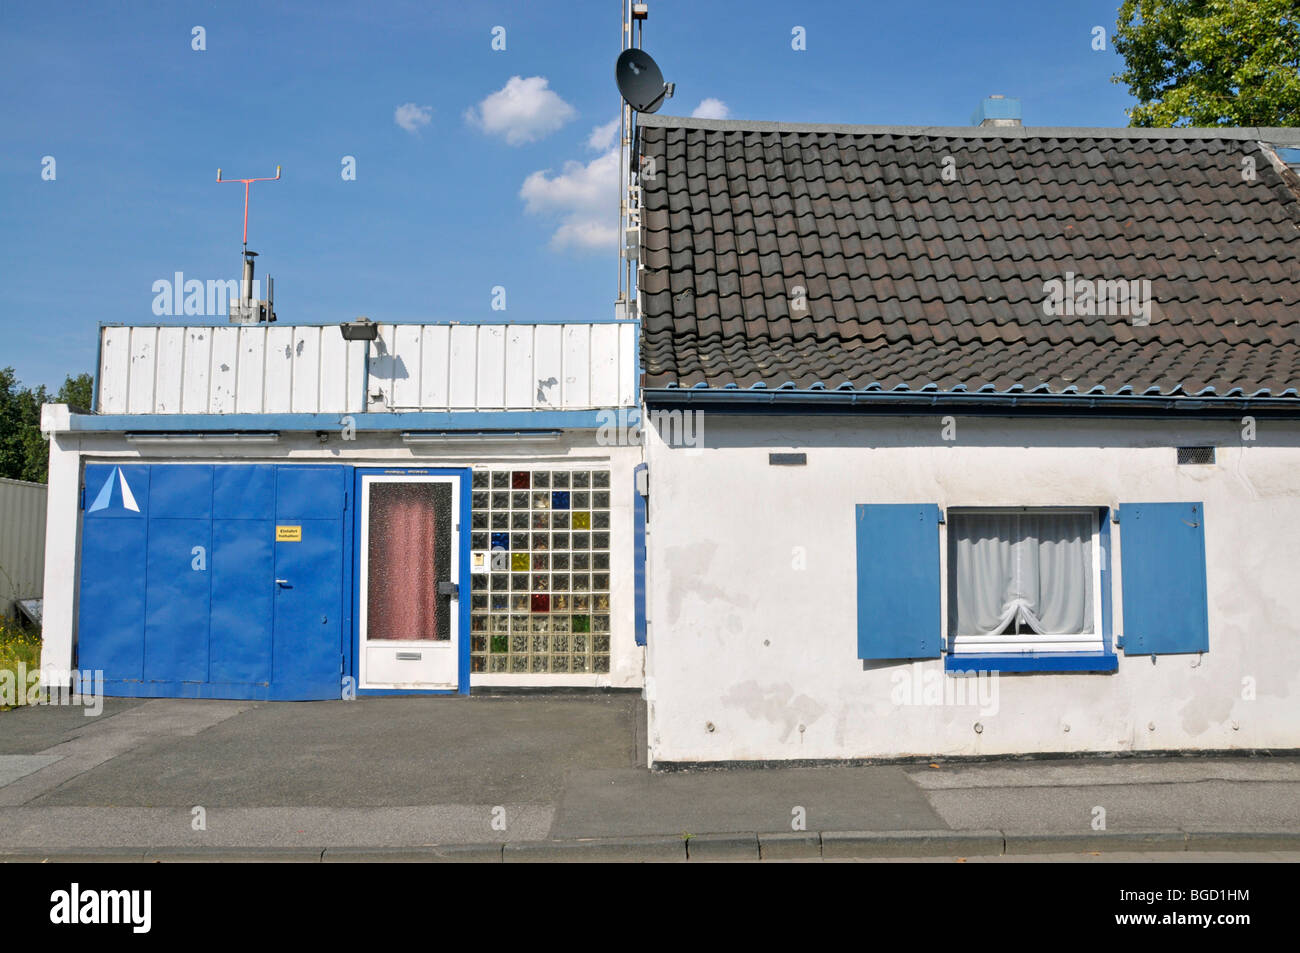 Container Haus Nrw Duisburg House Stock Photos Duisburg House Stock Images Alamy